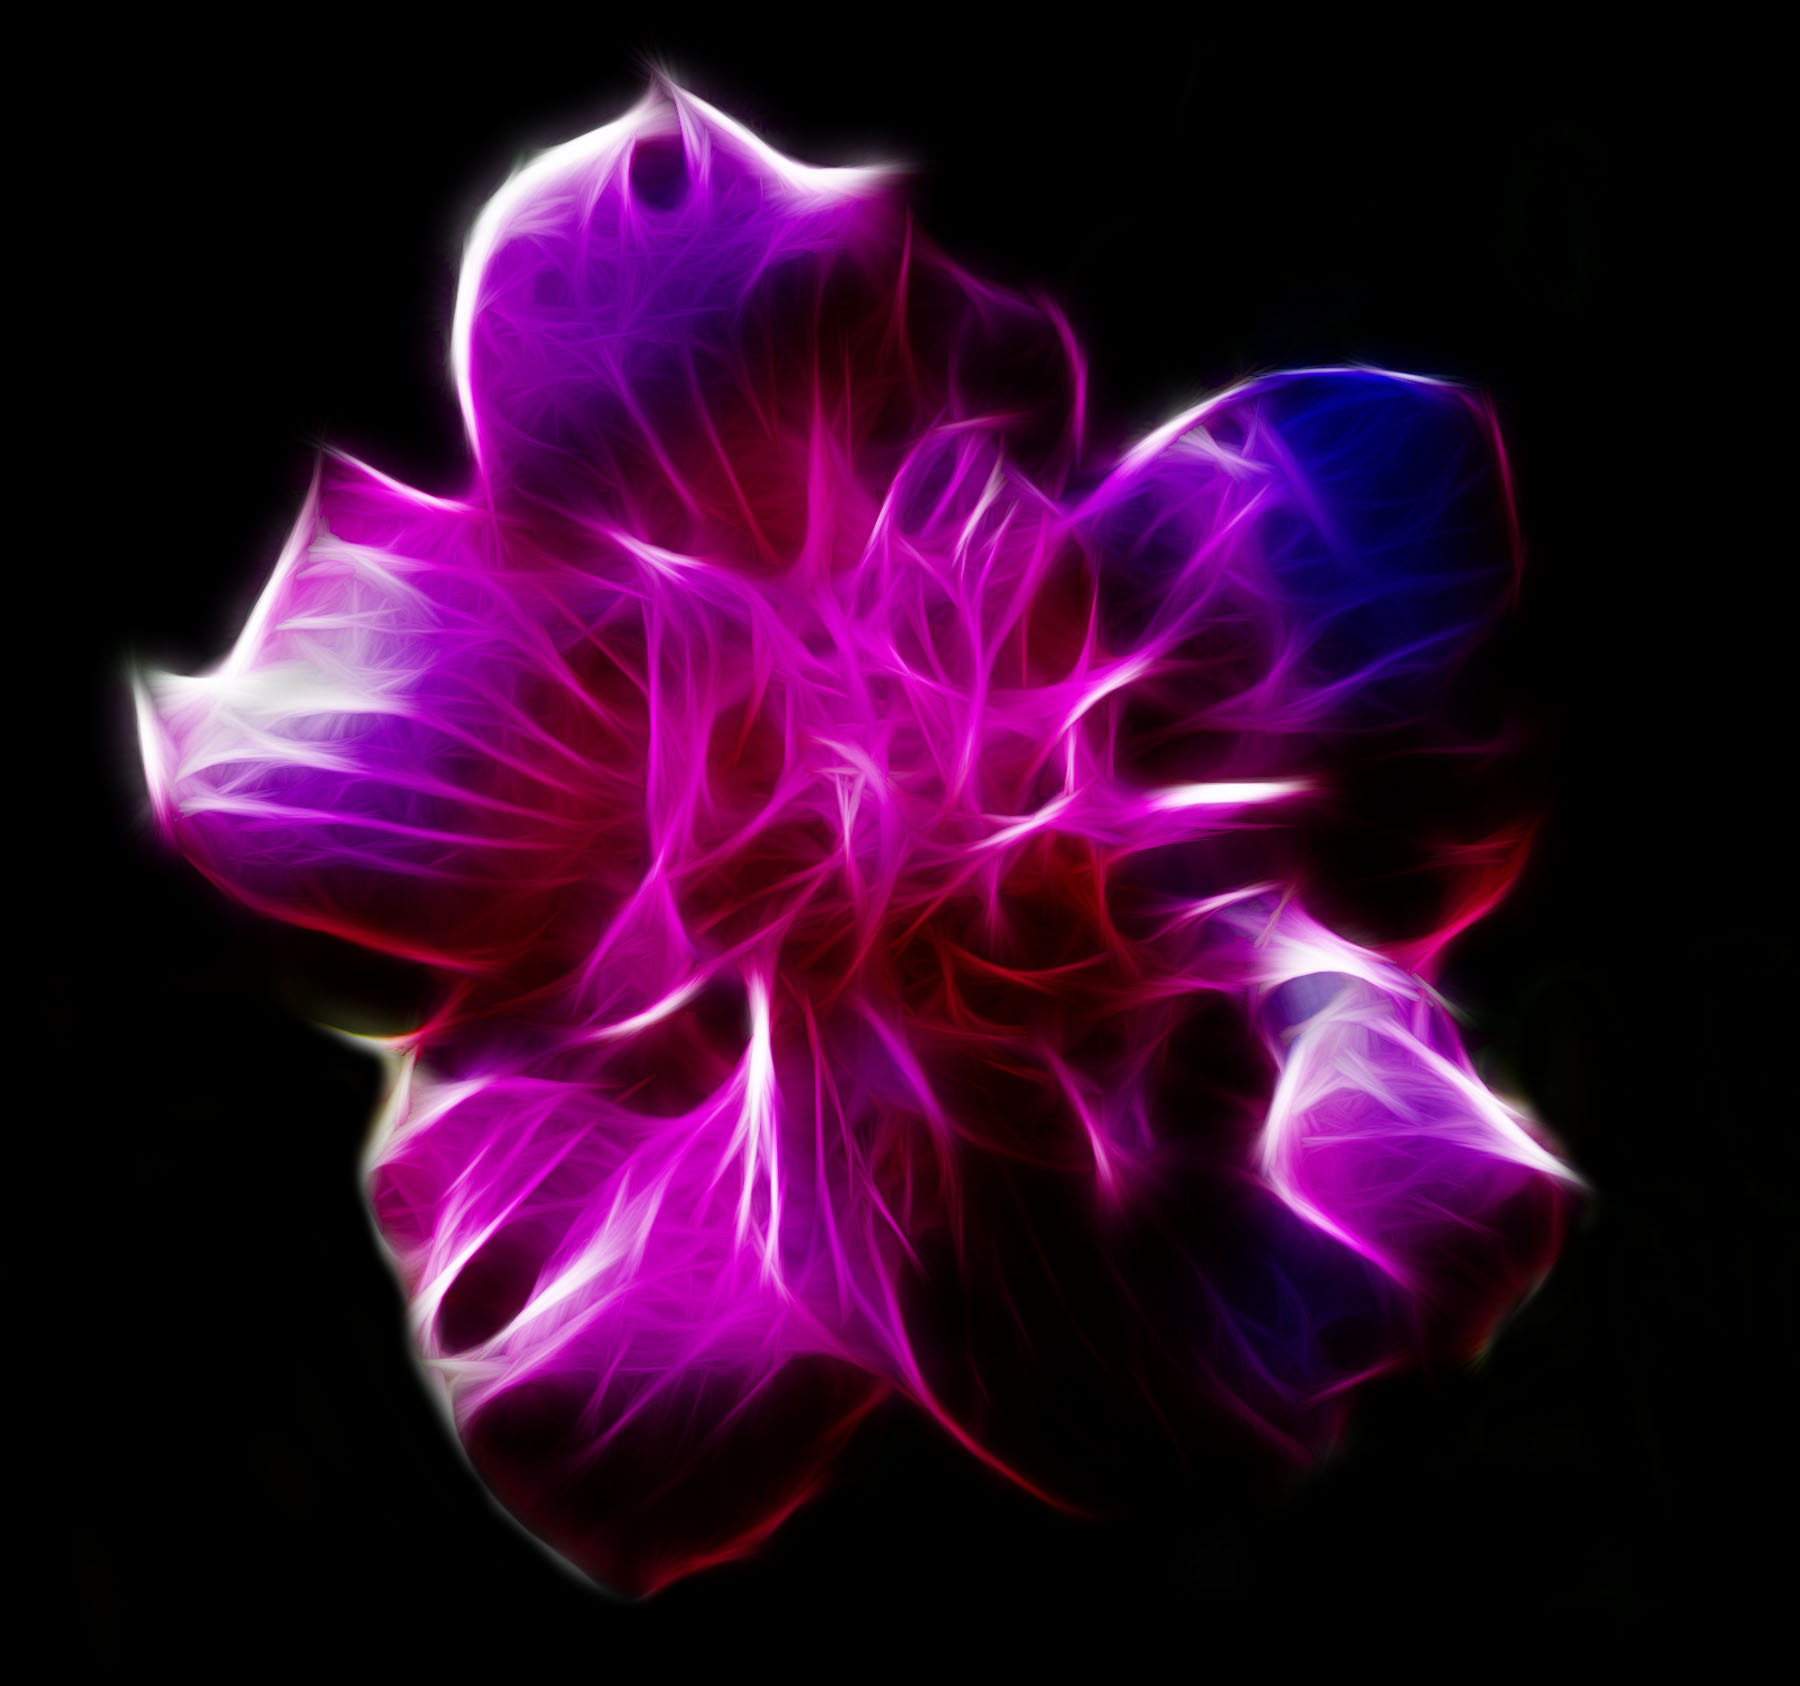 Photograph Fractal Flower by Jennifer Williams on 500px